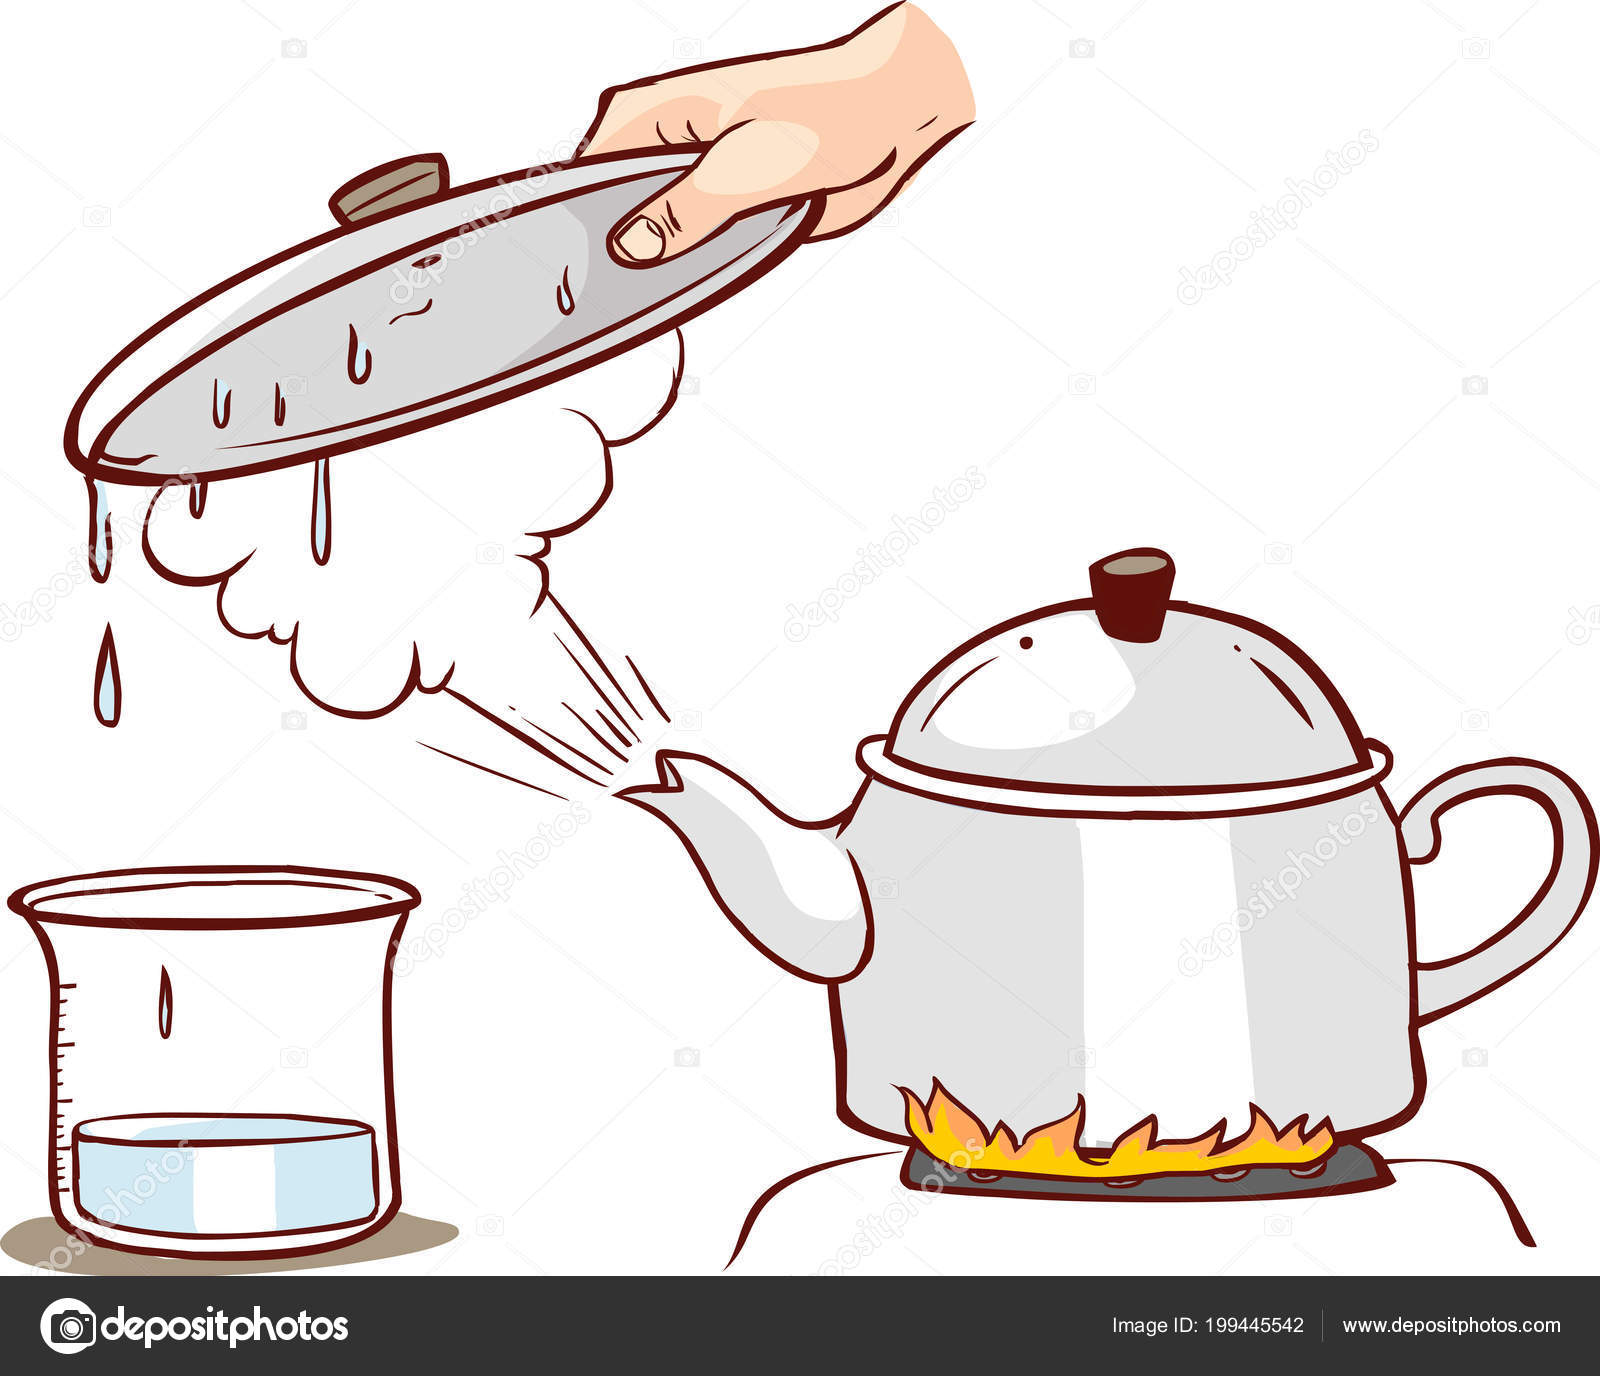 Pictures: boiling water clip art.